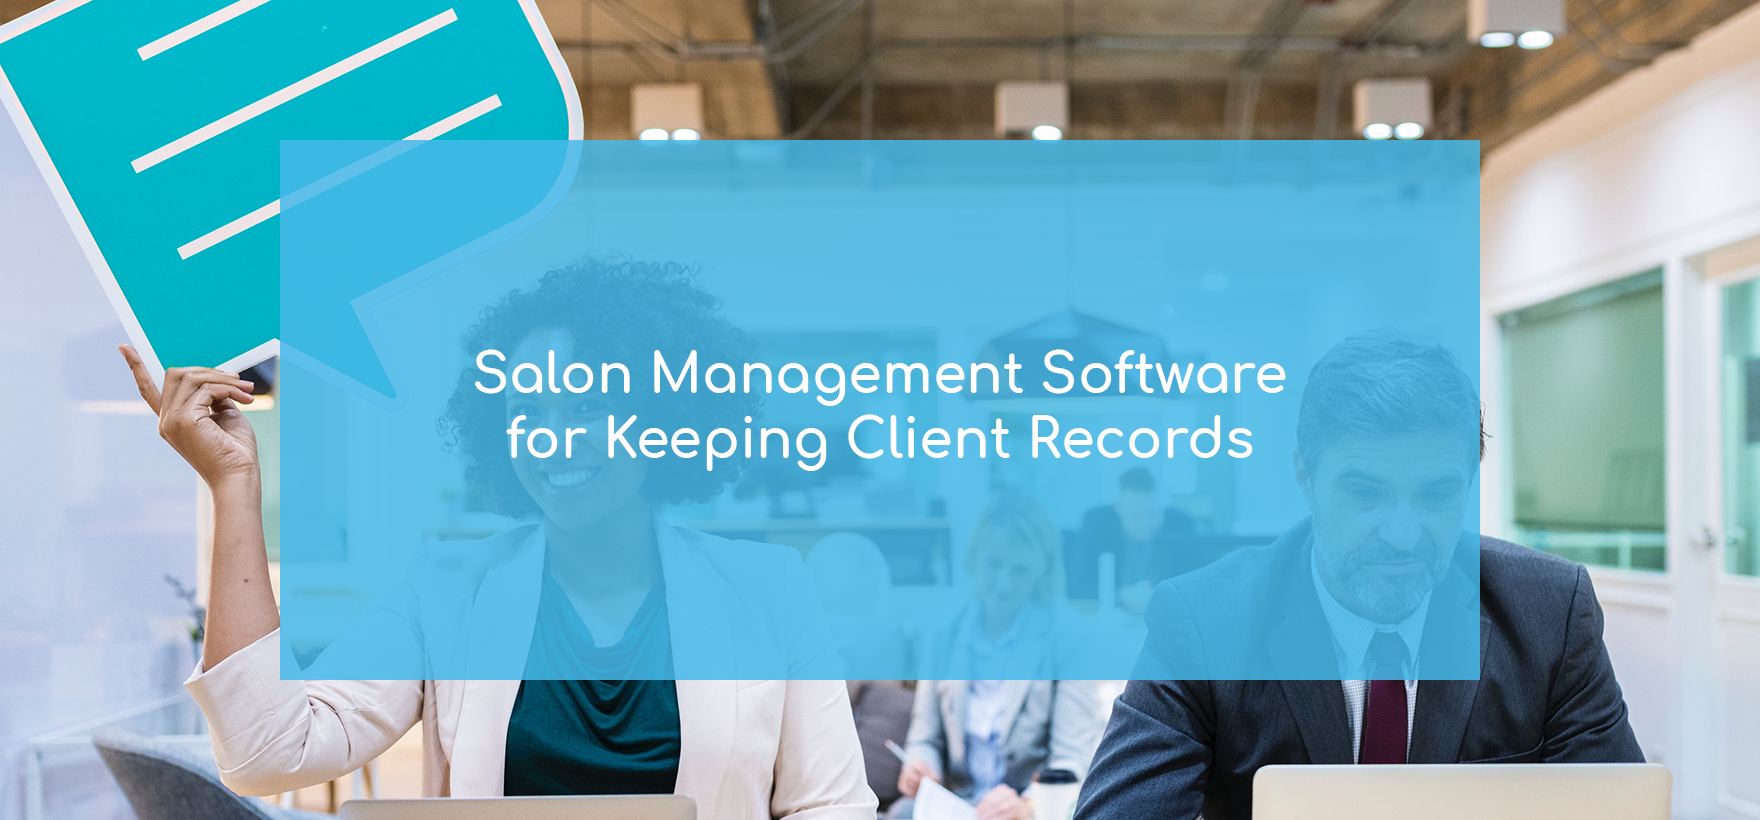 Keeping Track of Client Records with Salon Management Software